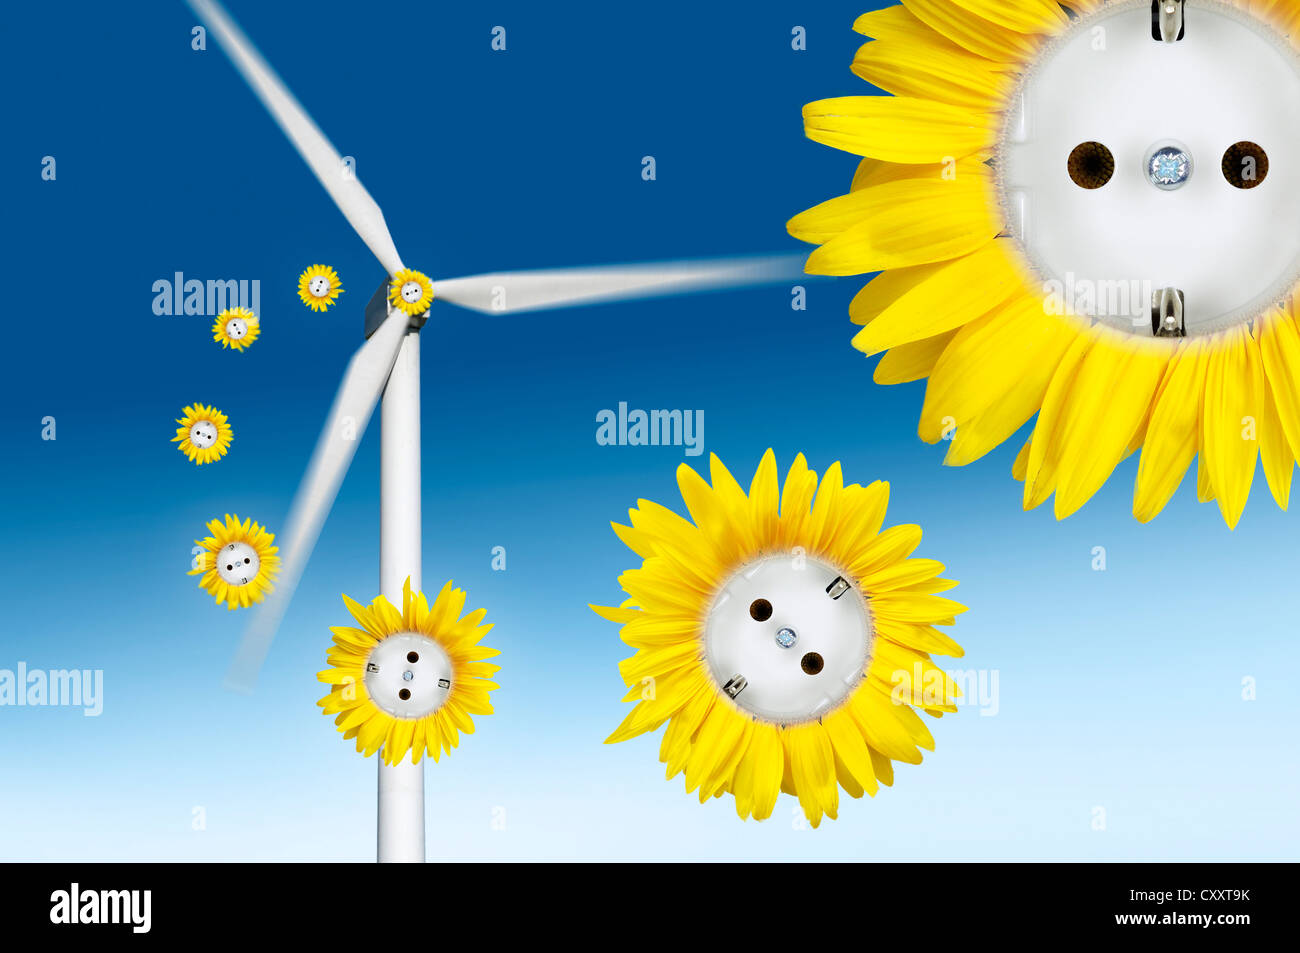 Symbolic image for wind power, sun flower sockets flying out of a wind turbine Stock Photo